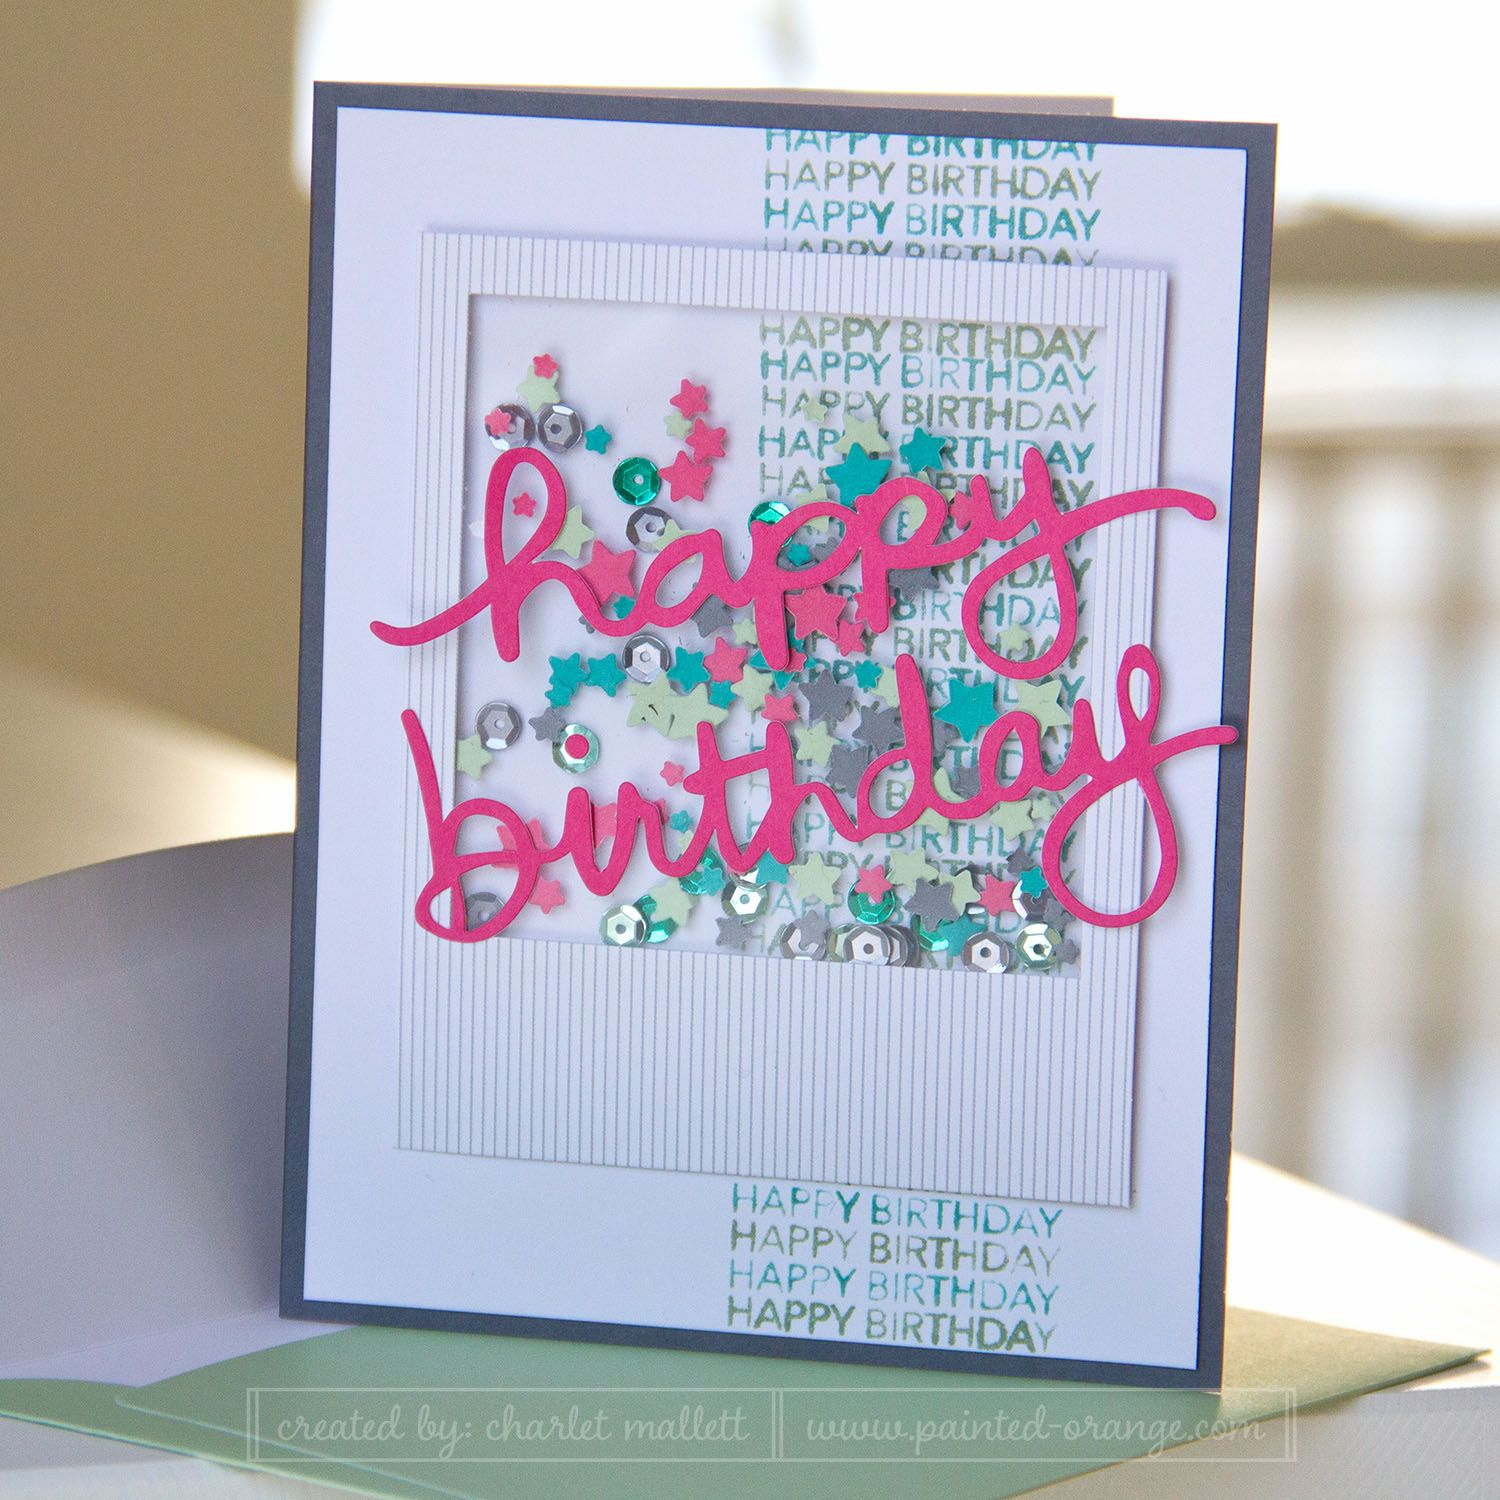 Happy Birthday Altered Card From The All Shook Up Paper Pumpkin